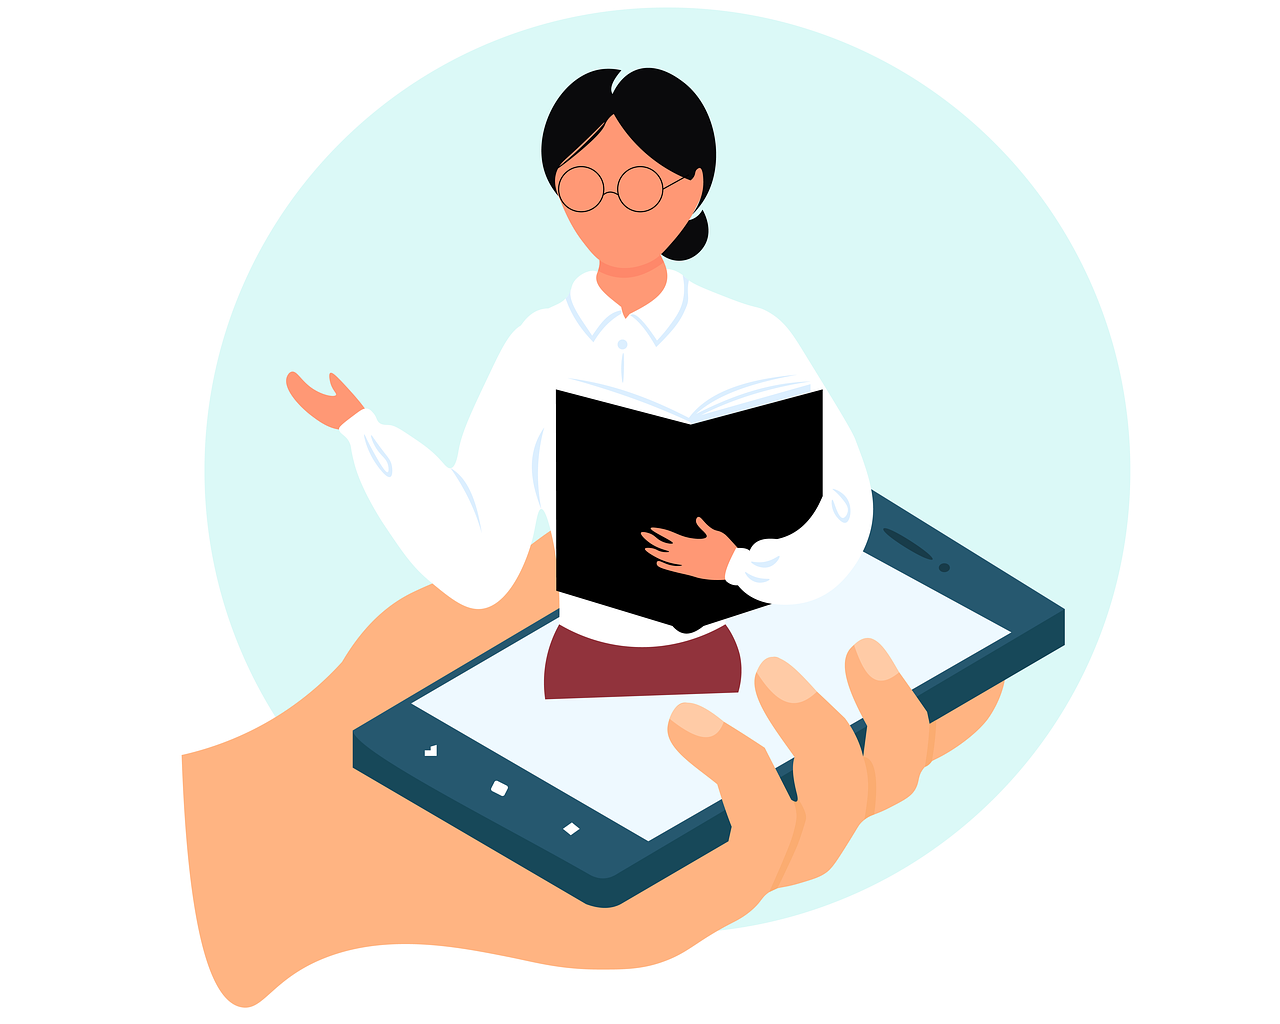 icon of student rising out of smartphone